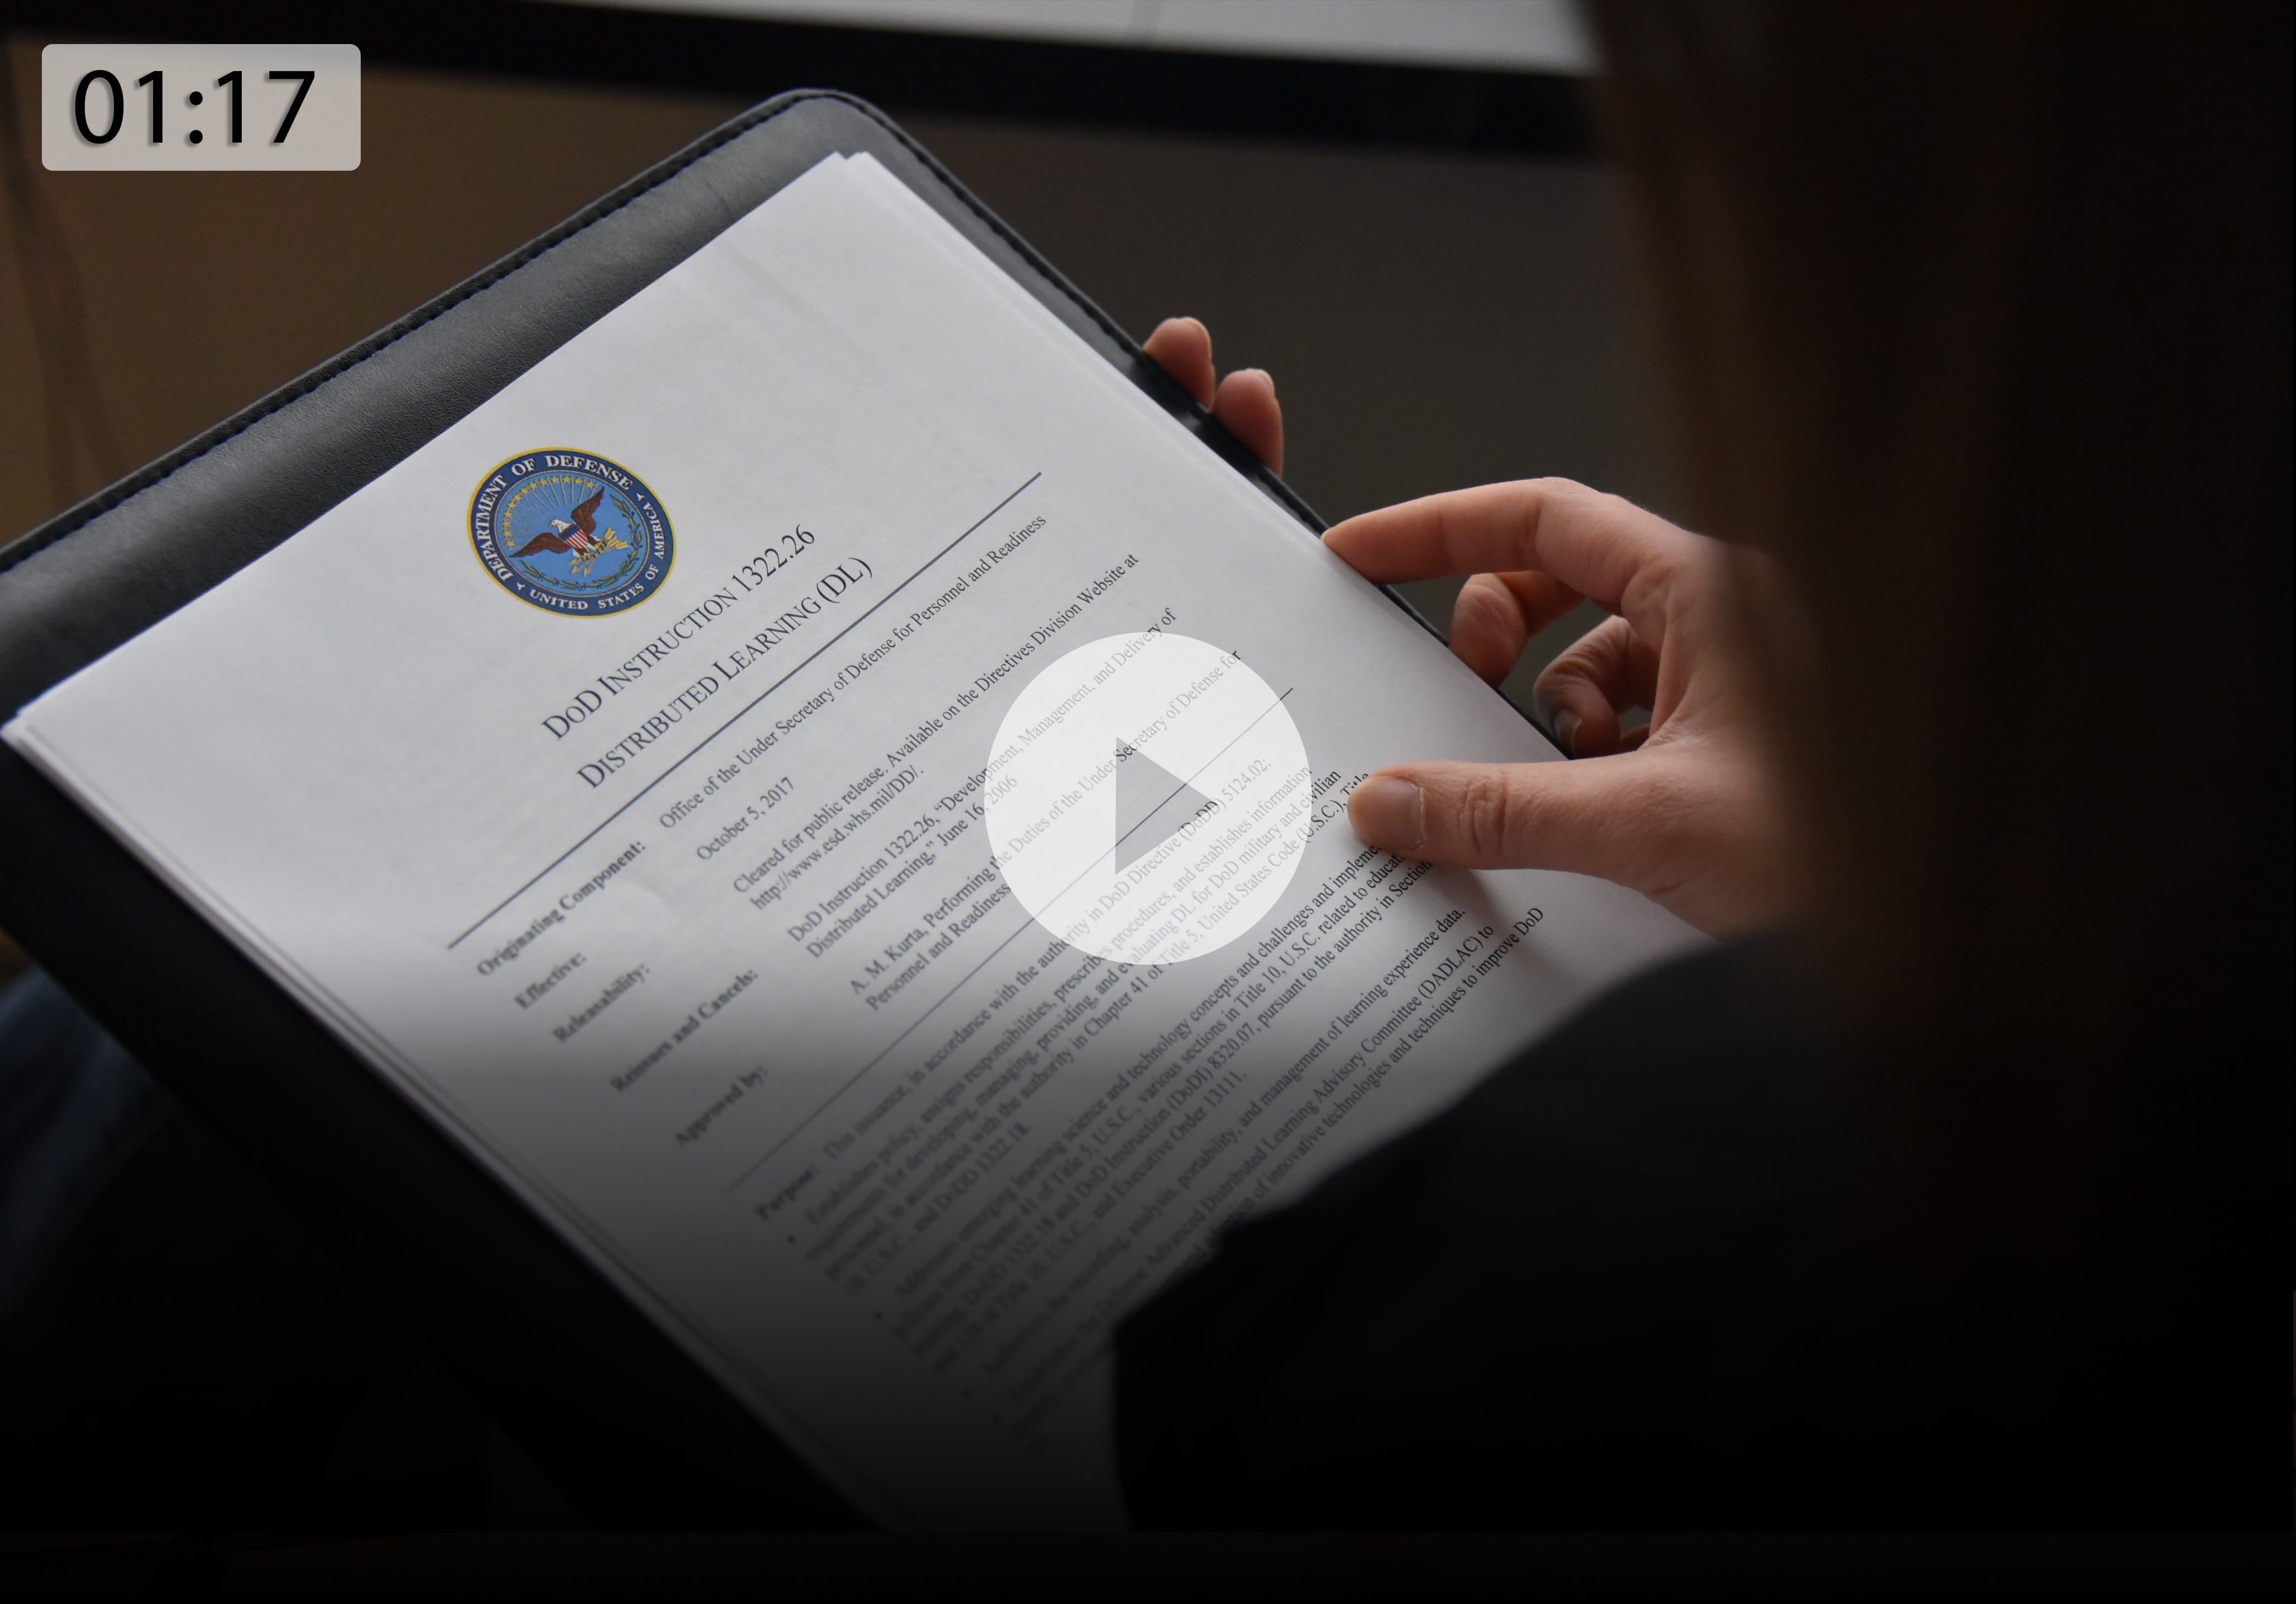 The Advanced Distributed Learning (ADL) Initiative is a government program reporting to the Office of the Secretary of Defense. This video provides a brief overview of the purpose, reach, and effect of the ADL Initiative on the DoD community and beyond.